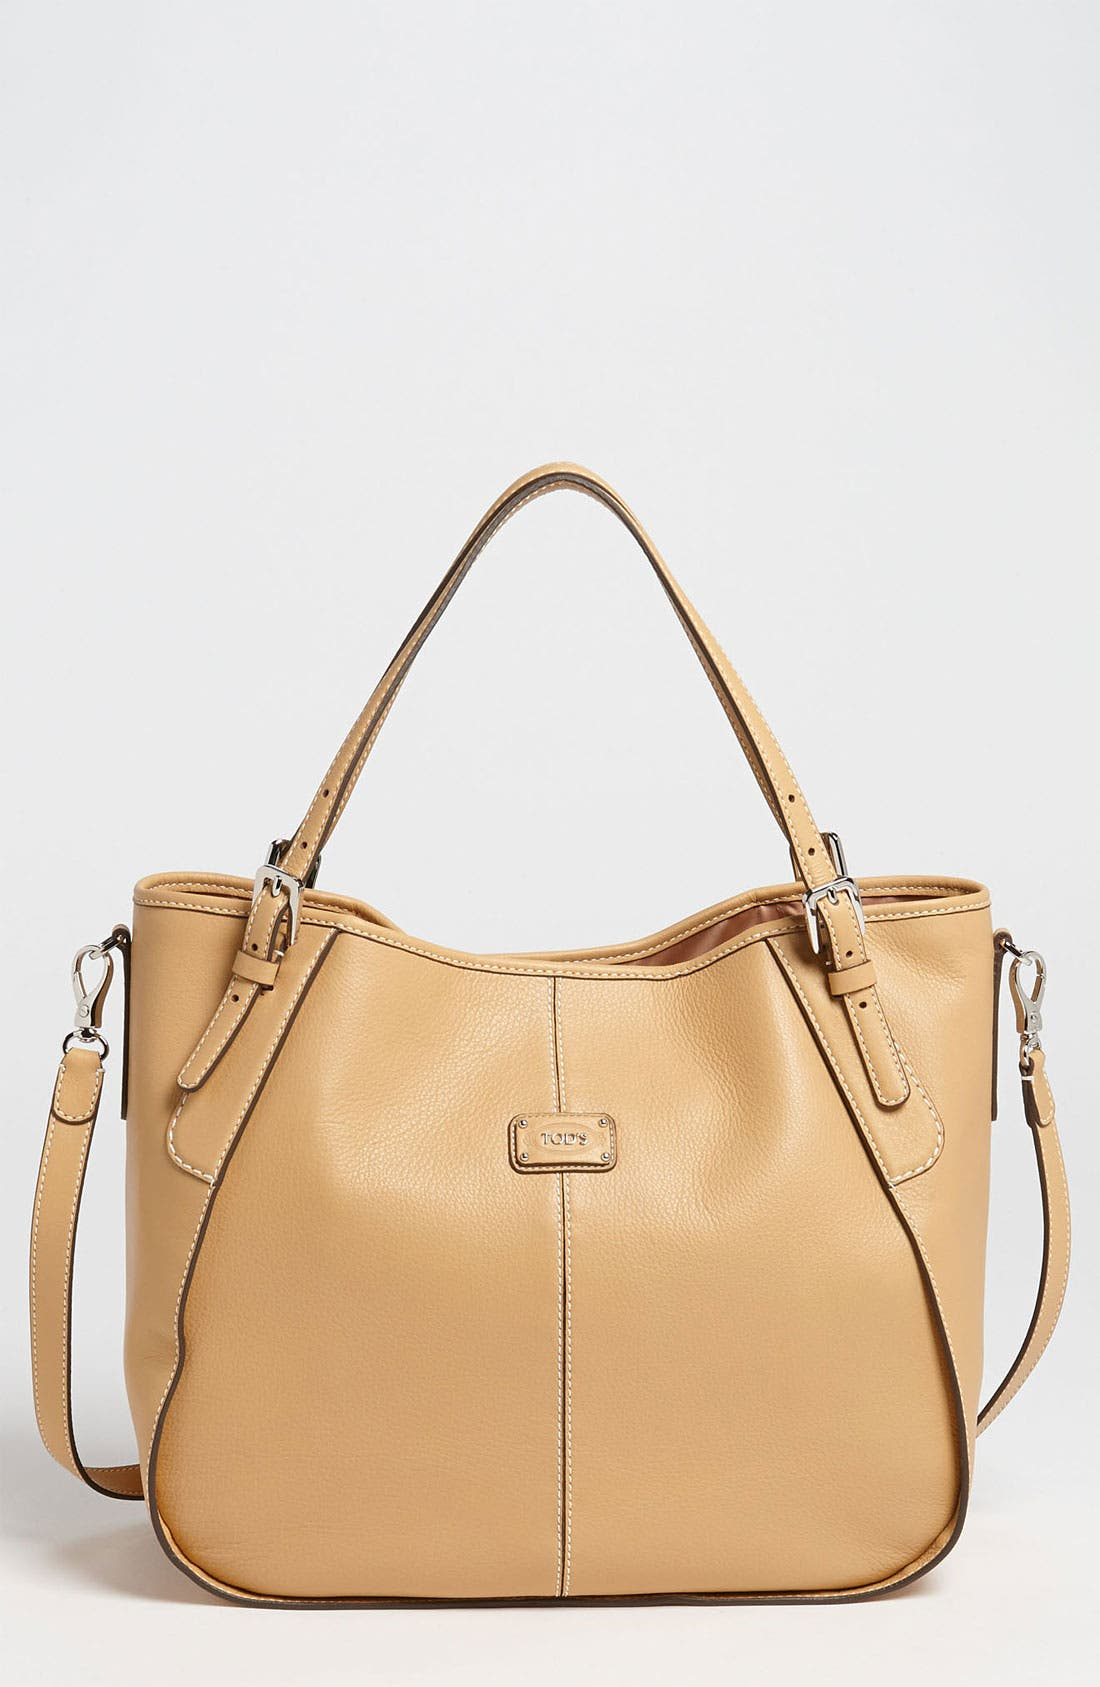 Main Image - Tod's 'New G - Medium' Leather Shoulder Bag